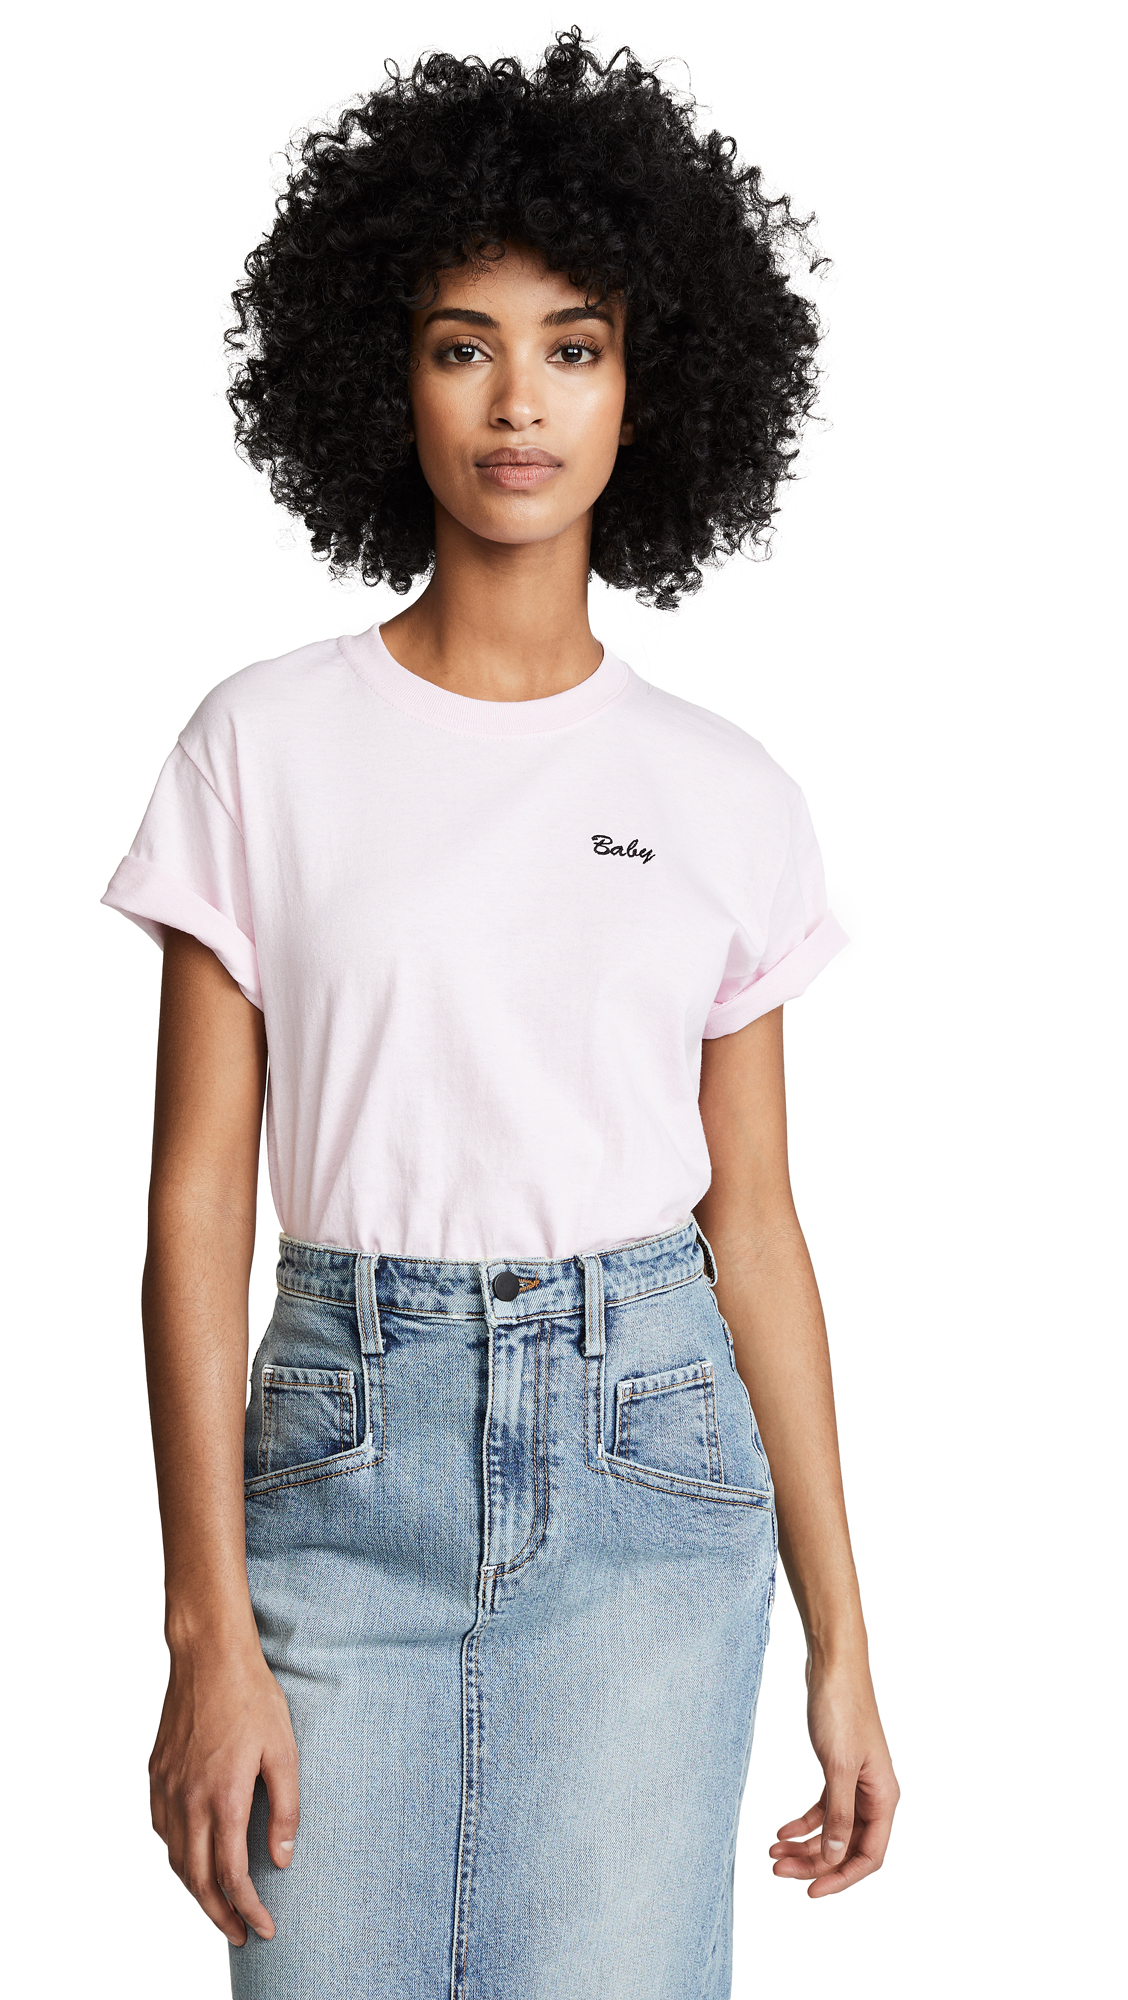 DOUBLE TROUBLE GANG Baby Tee in Powder Pink